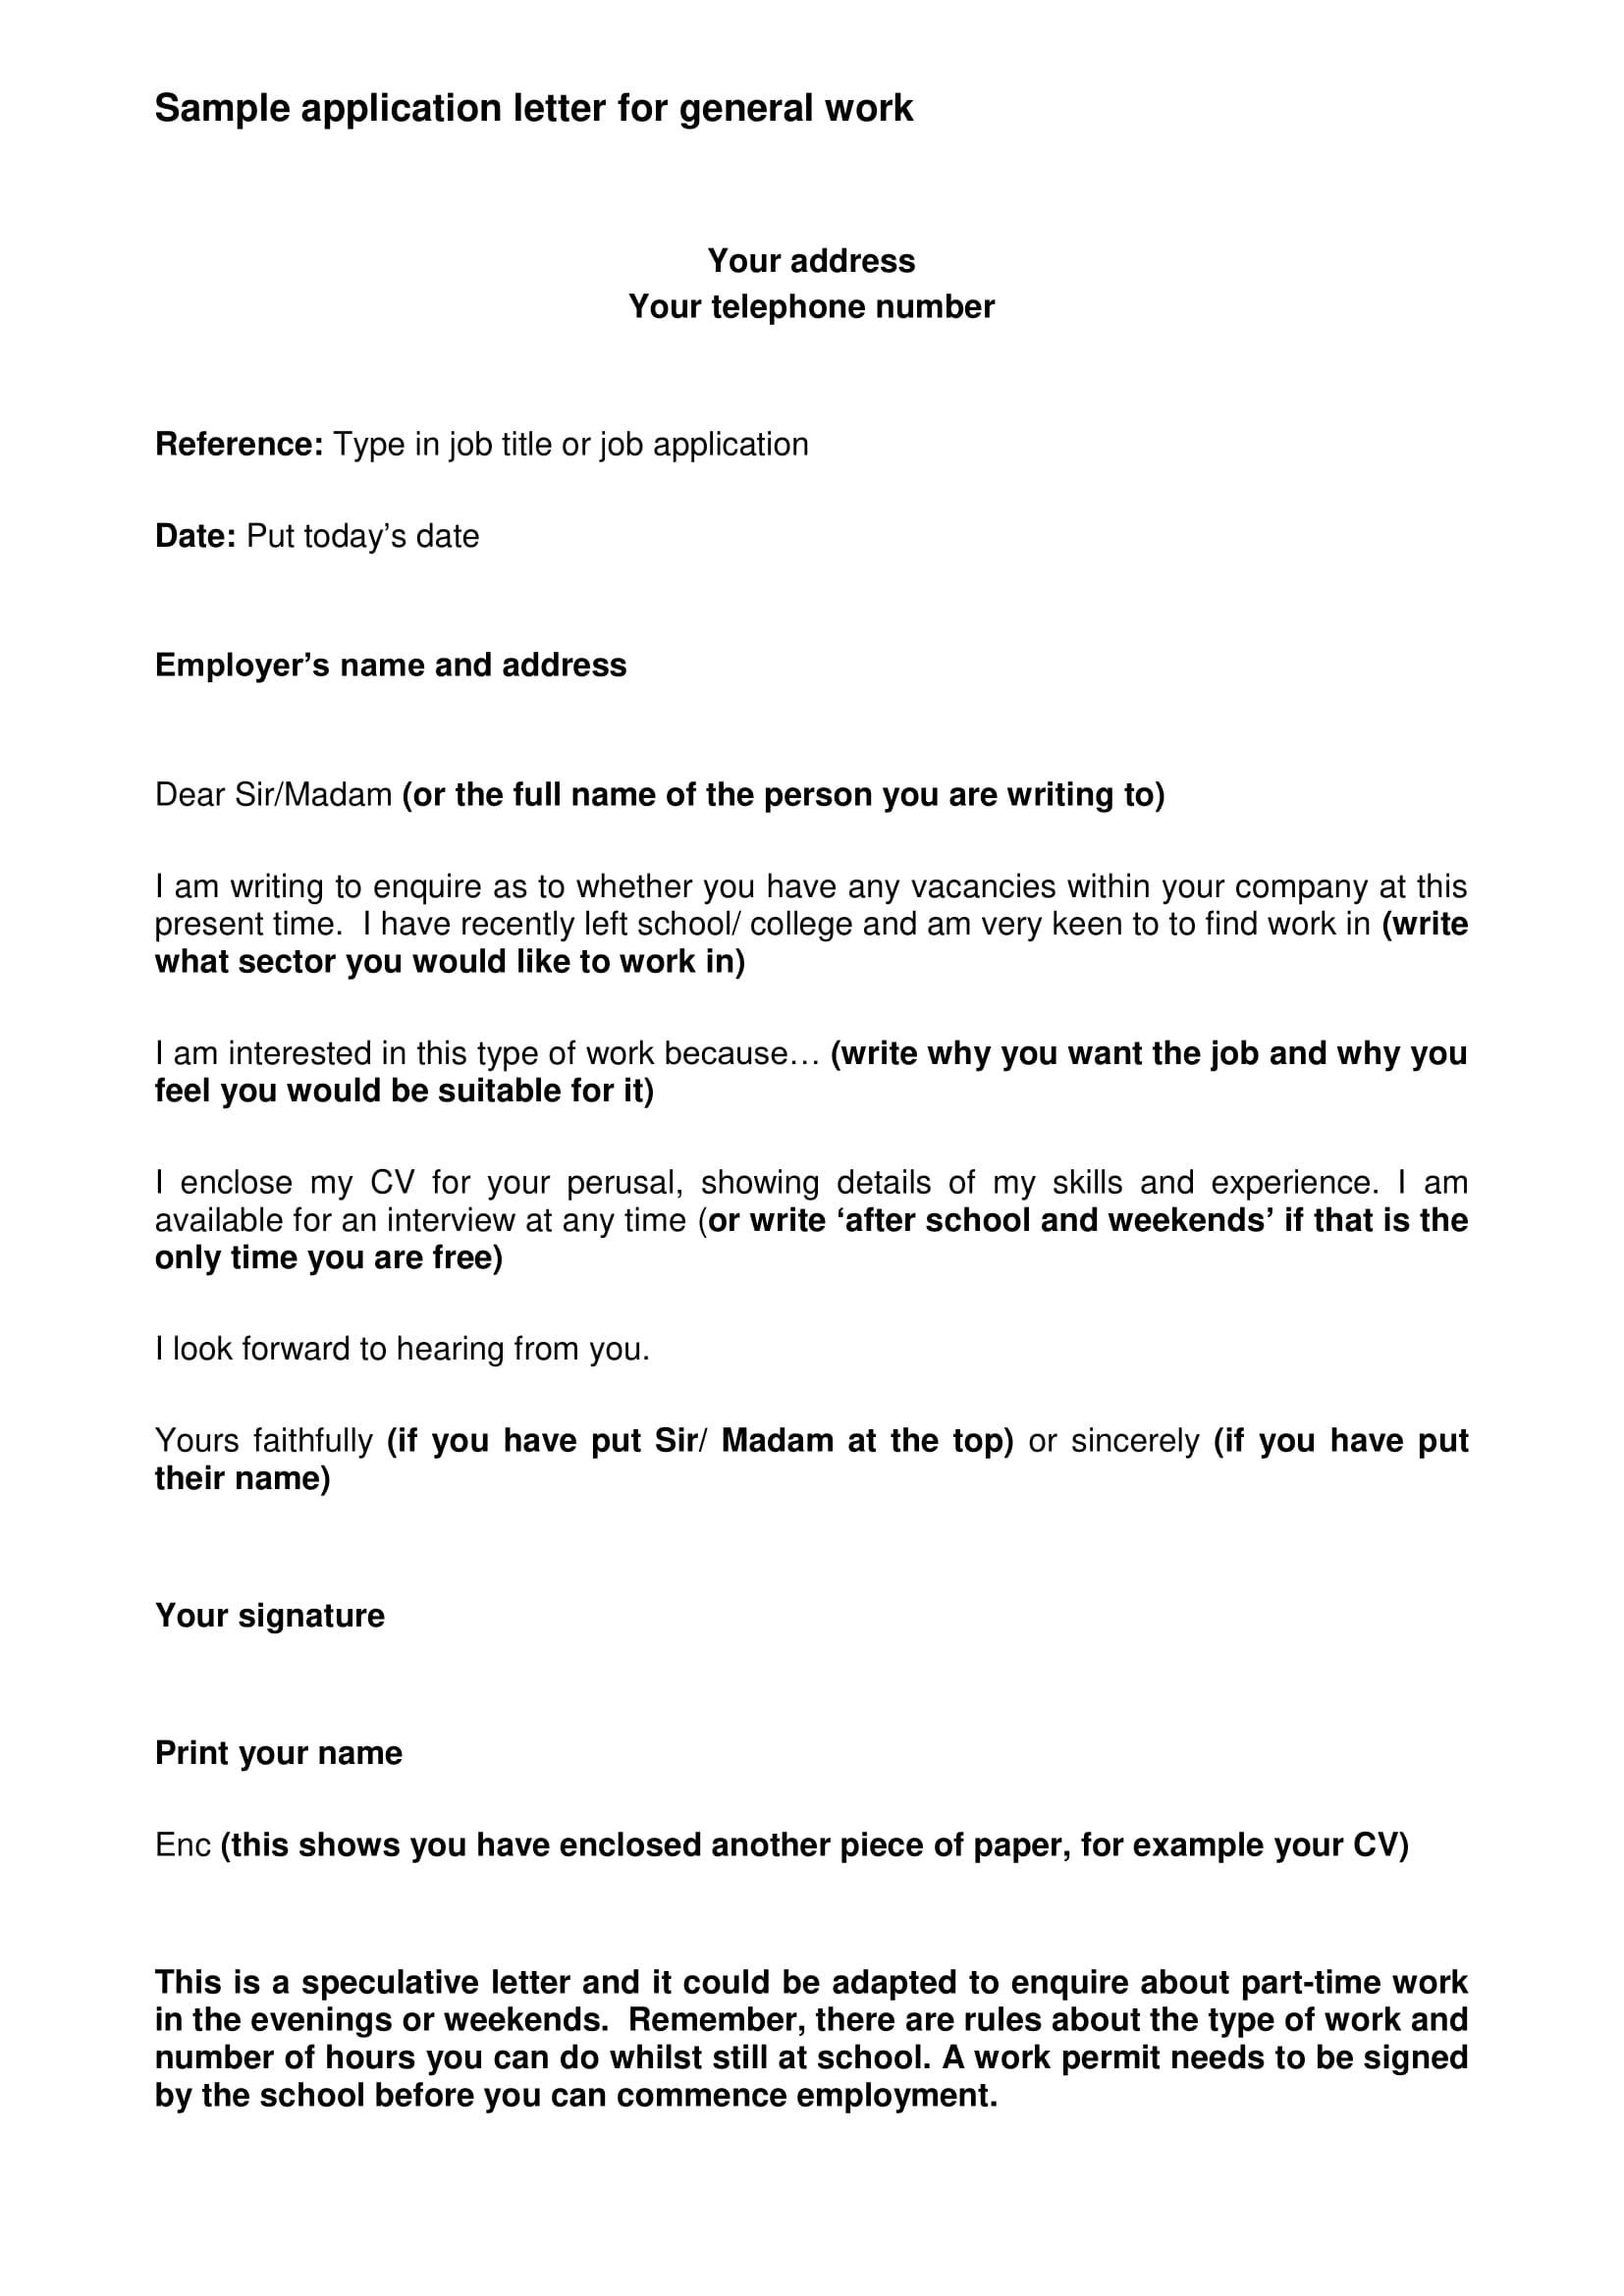 19 job application letter examples pdf application letter for general work example spiritdancerdesigns Gallery